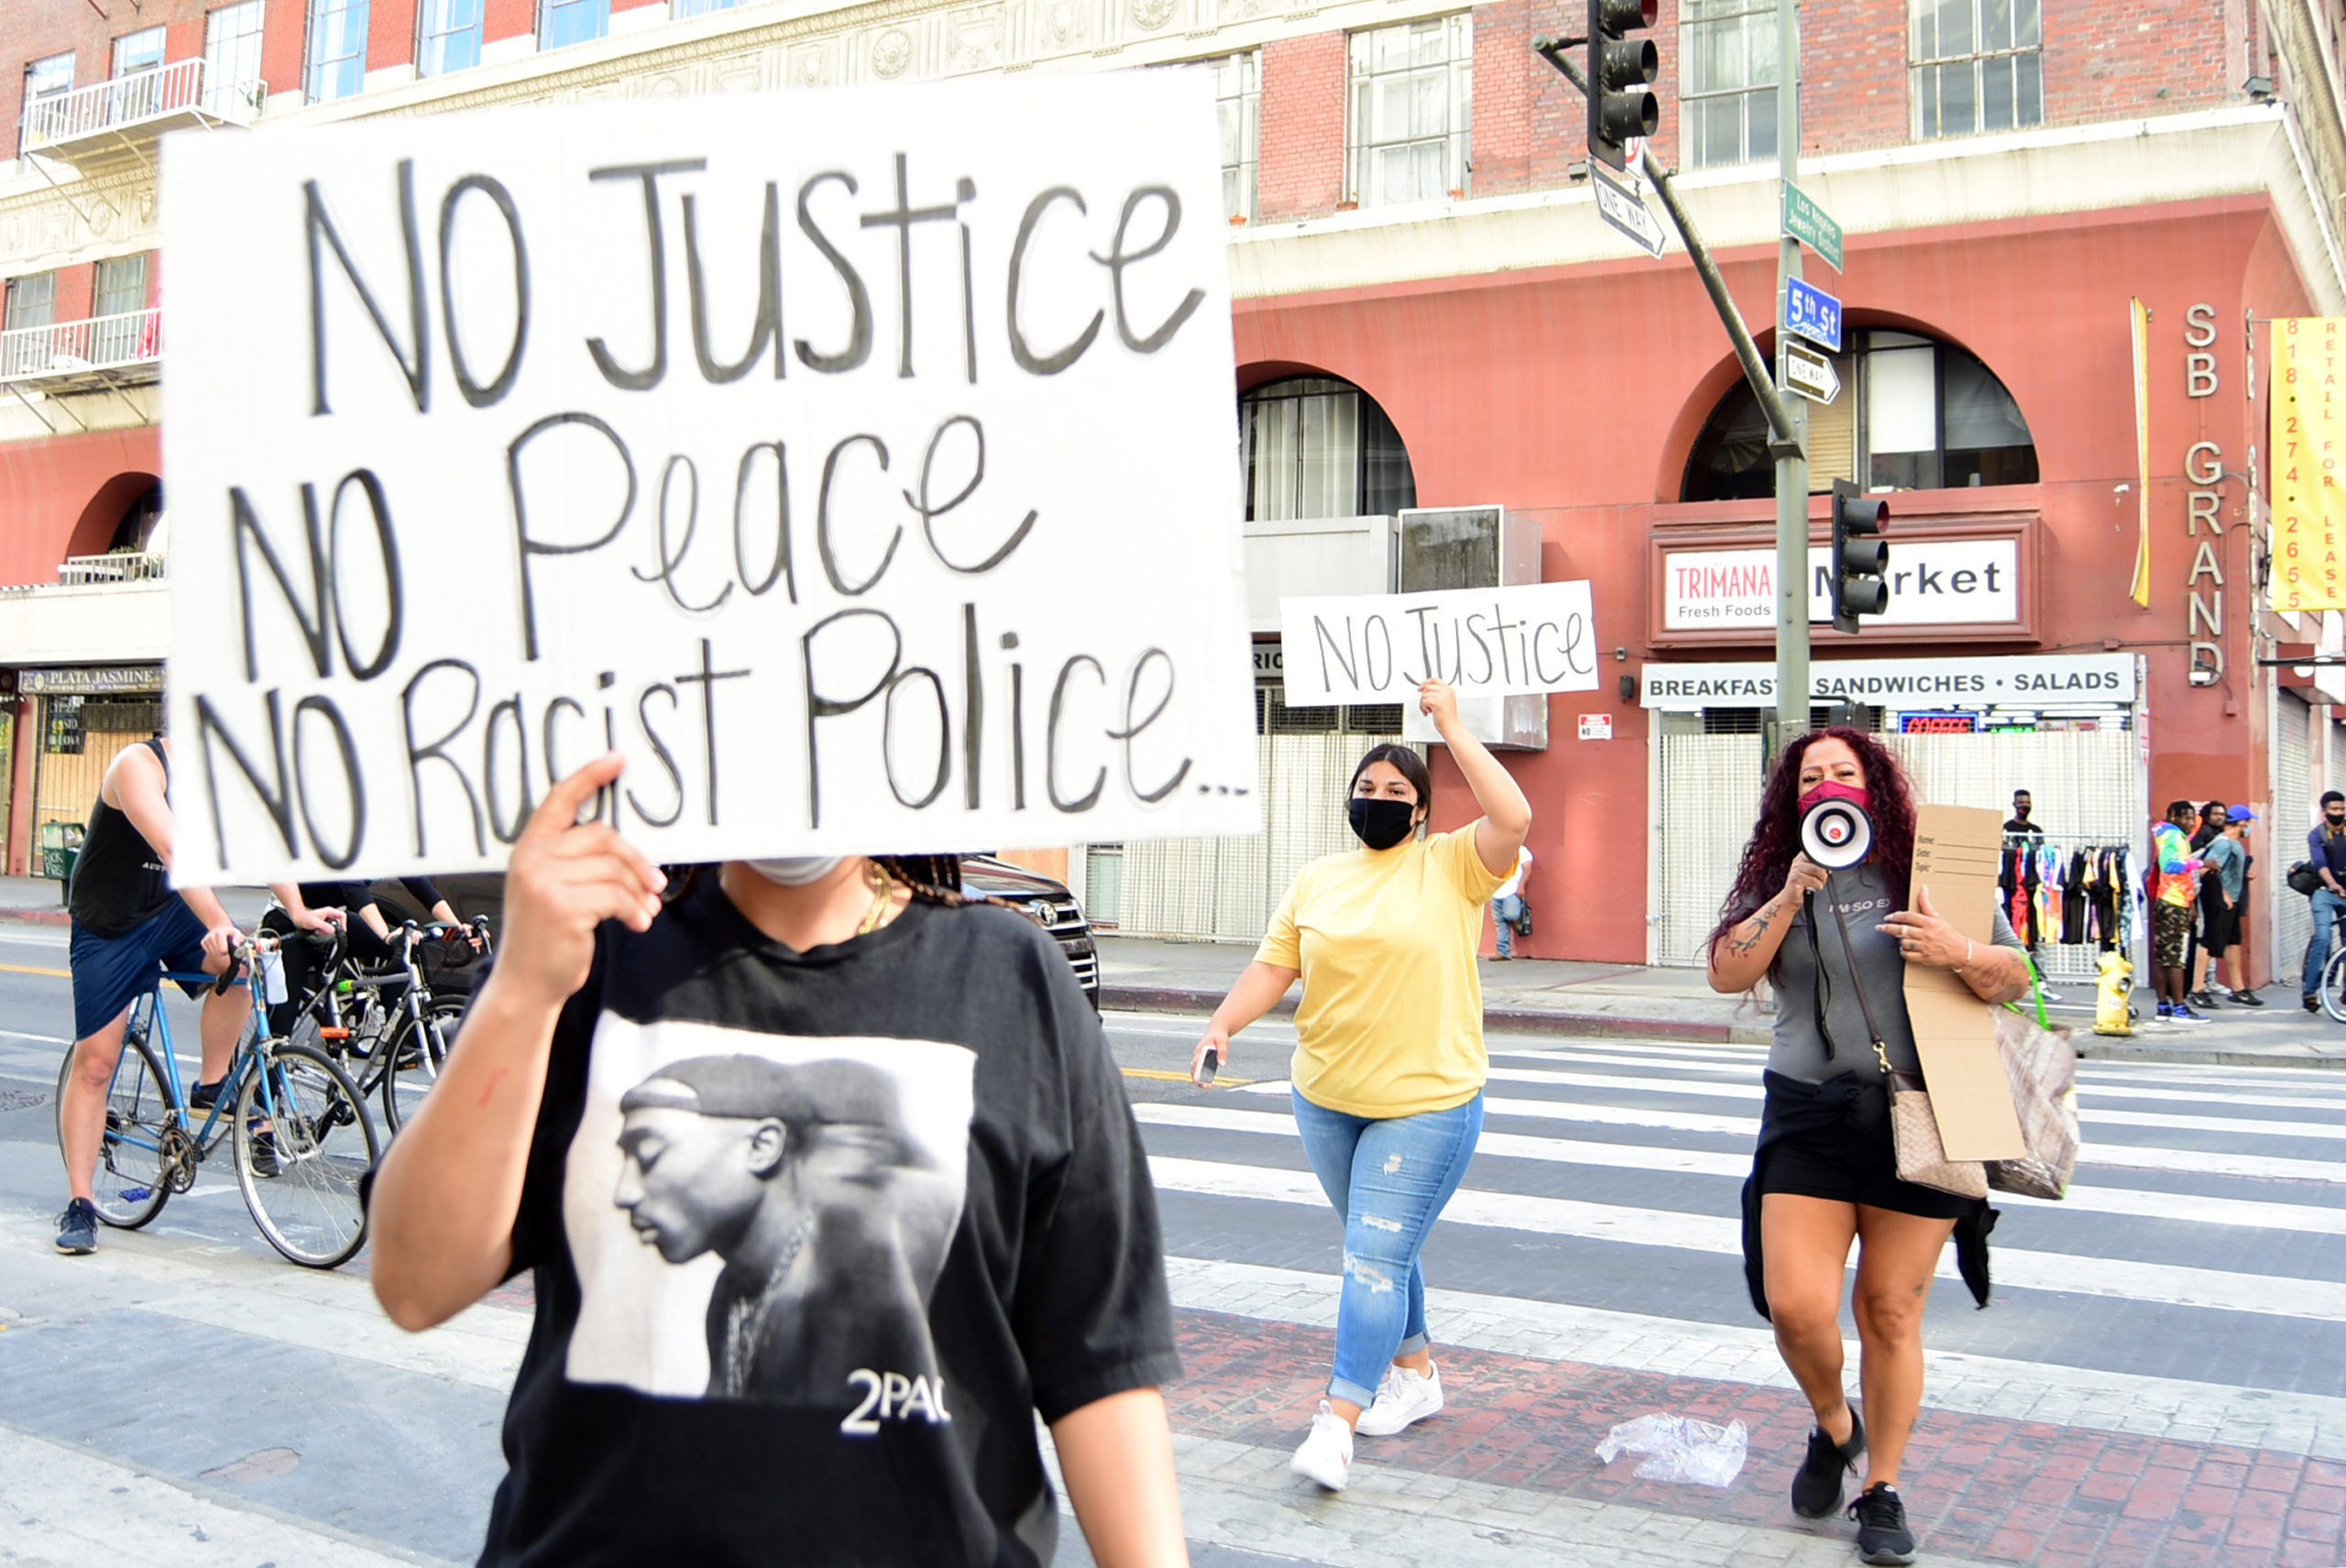 south-pasadena-news-05-31-2020-george-floyd-blm-black-lives-matter-protests-los-angeles-day-2-35